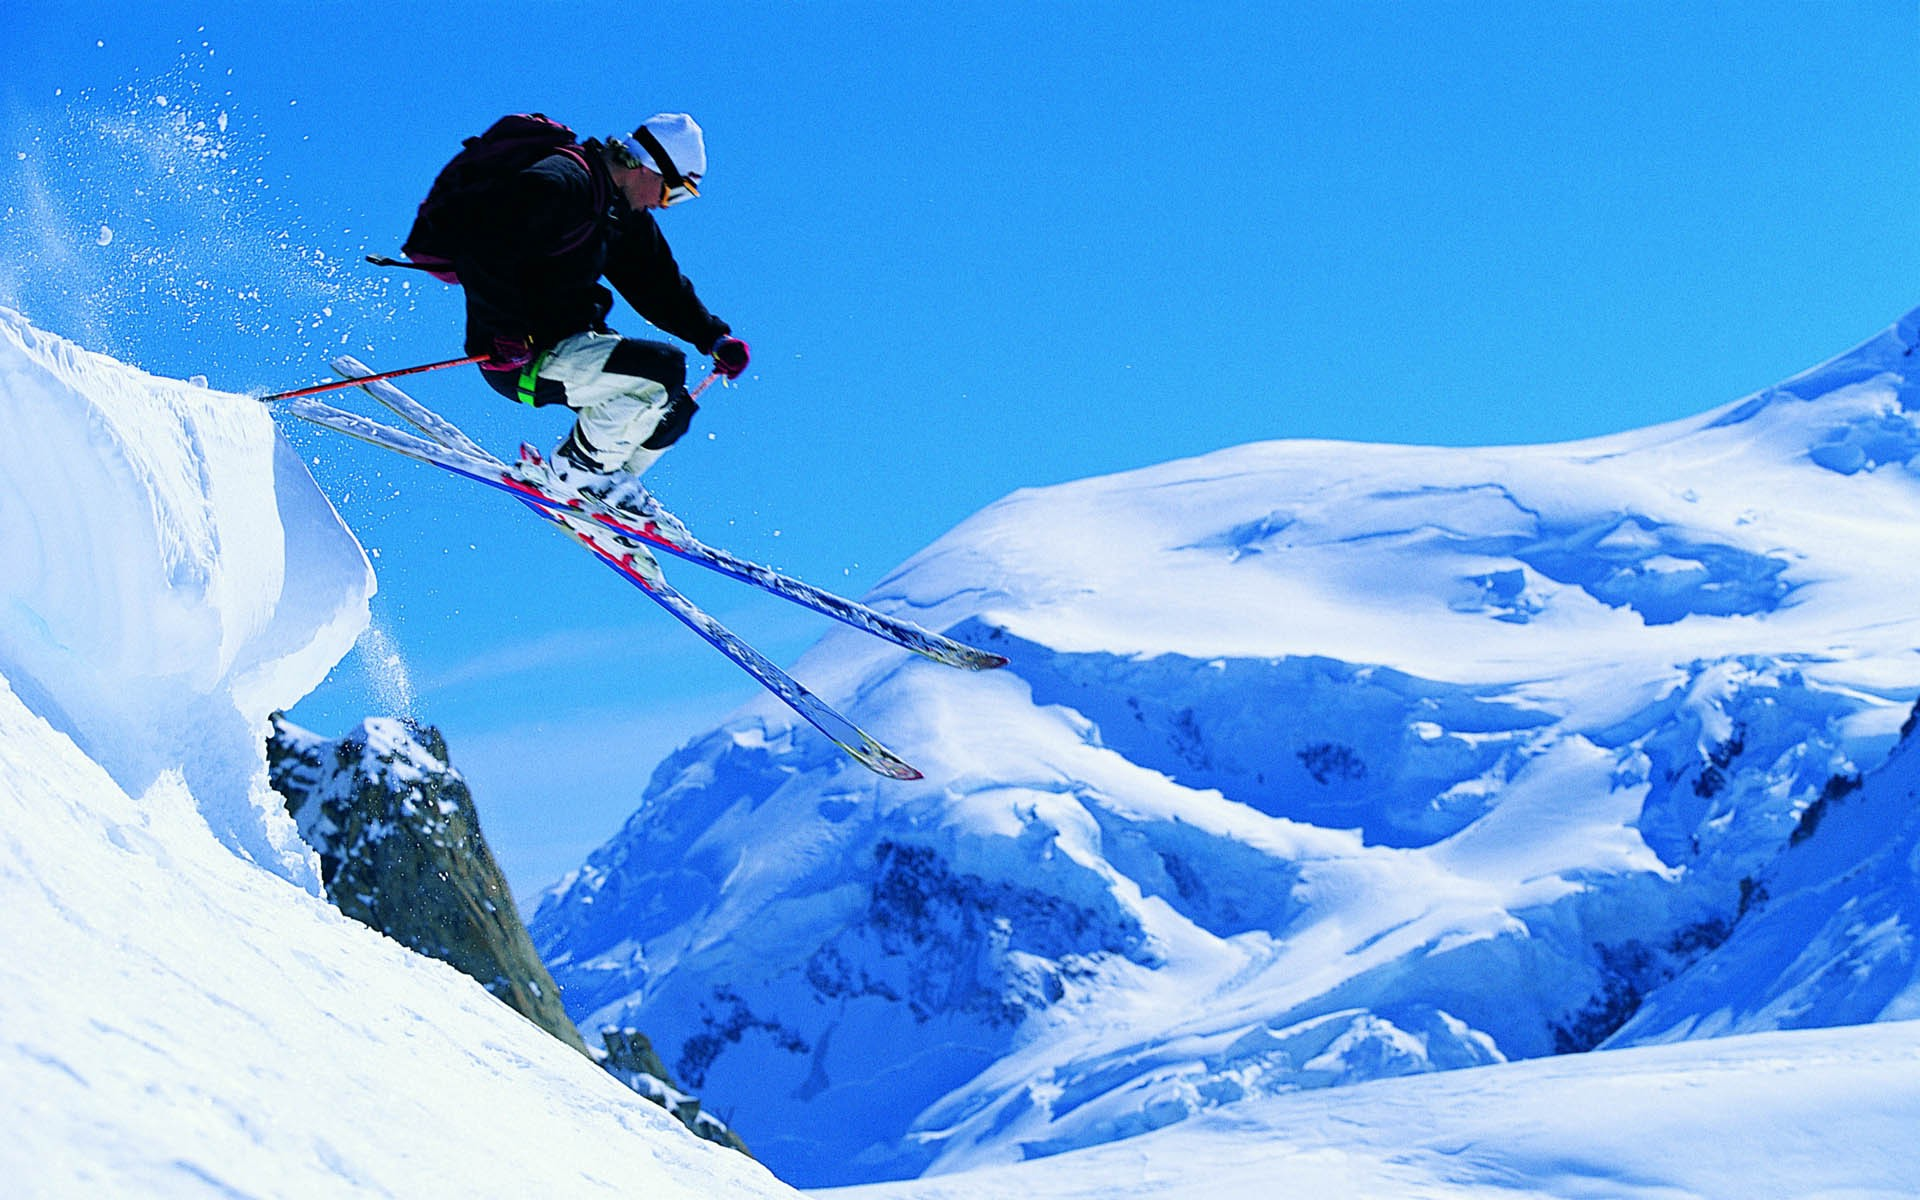 Skiing Sport Wallpaper Iphone: Skiing Wallpaper